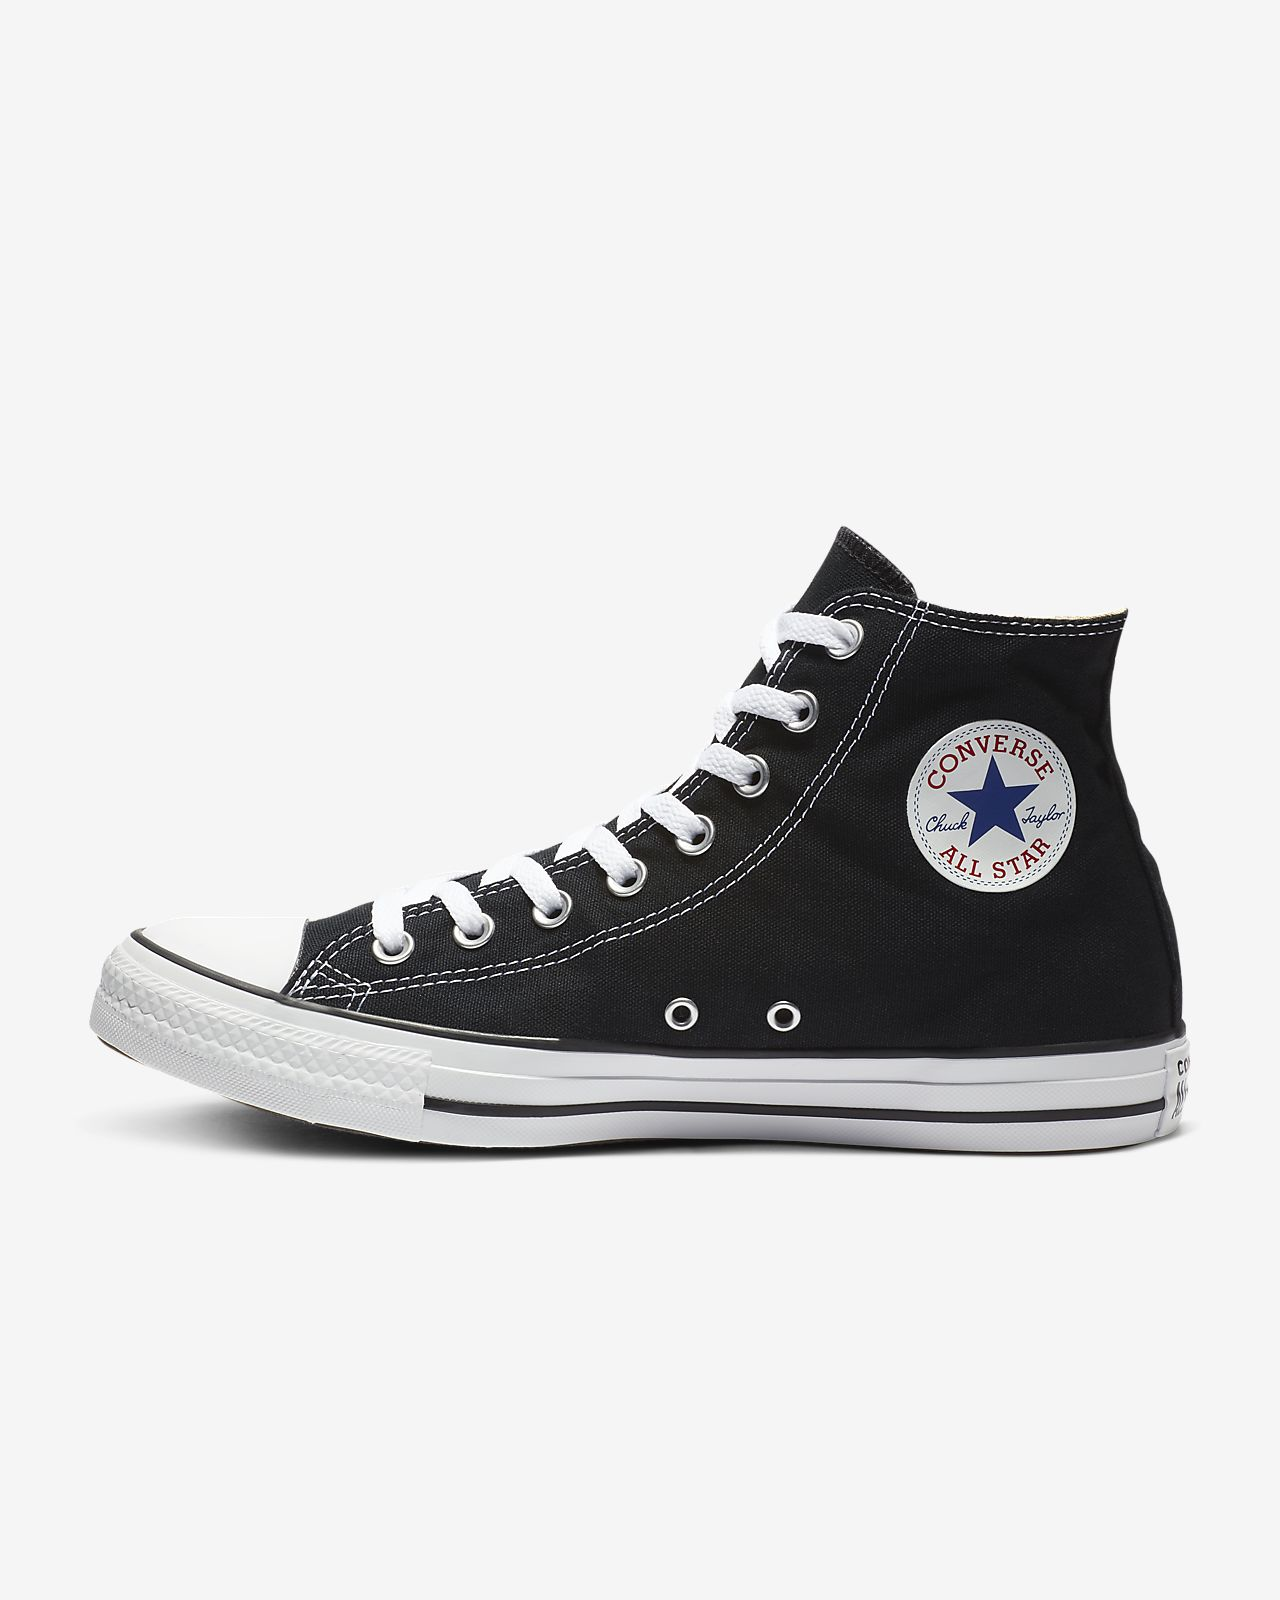 3a55f0bd87fd Converse Chuck Taylor All Star High Top Unisex Shoe. Nike.com